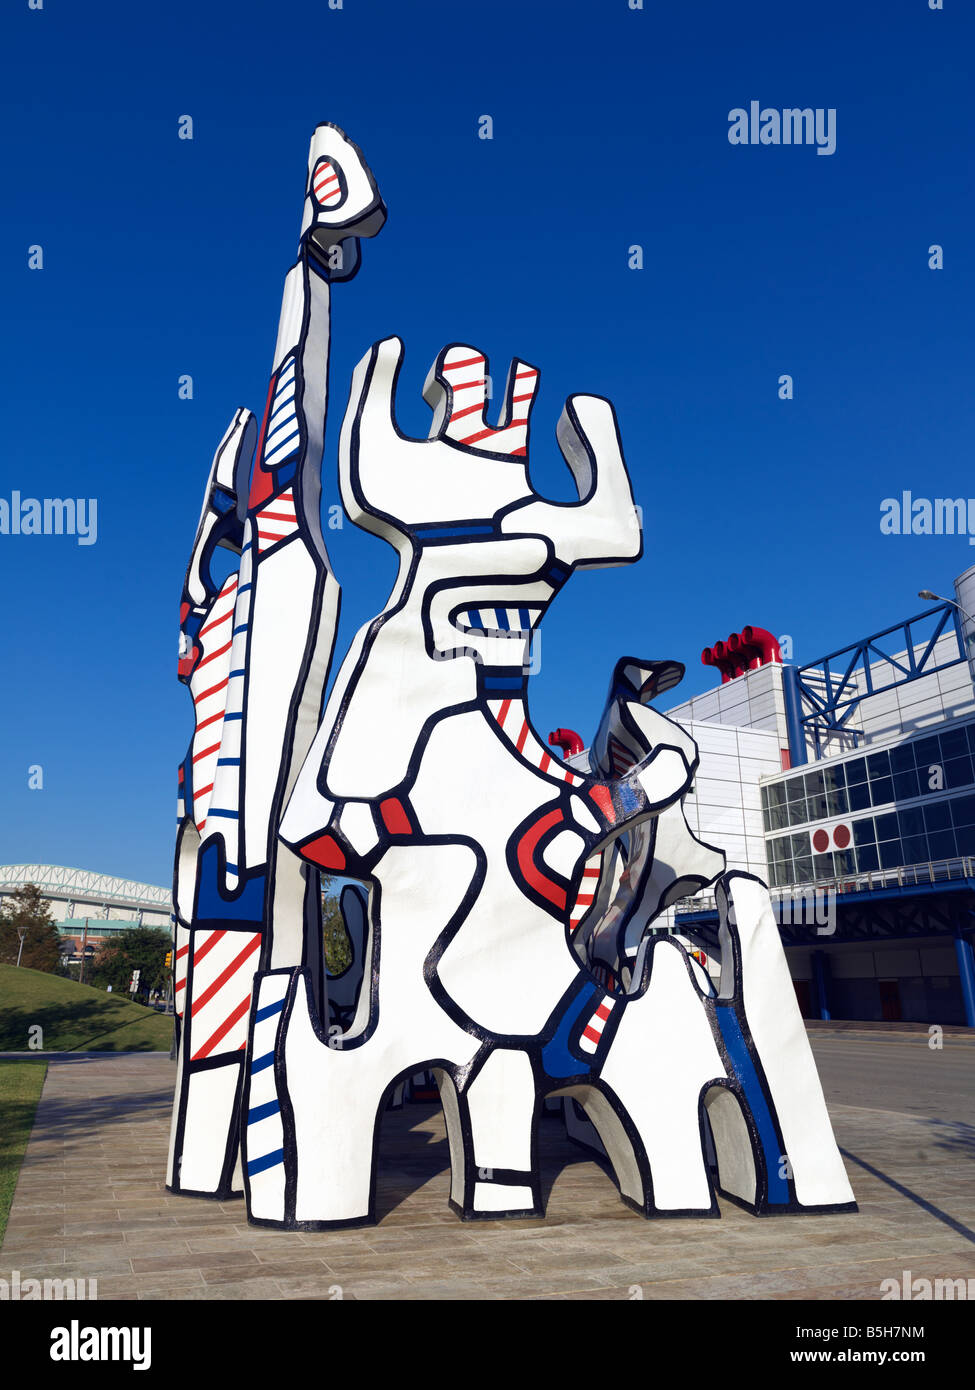 USA,Texas,Houston,sculpture of Monument au Fantome by Jean Dubuffet in Discovery Park - Stock Image